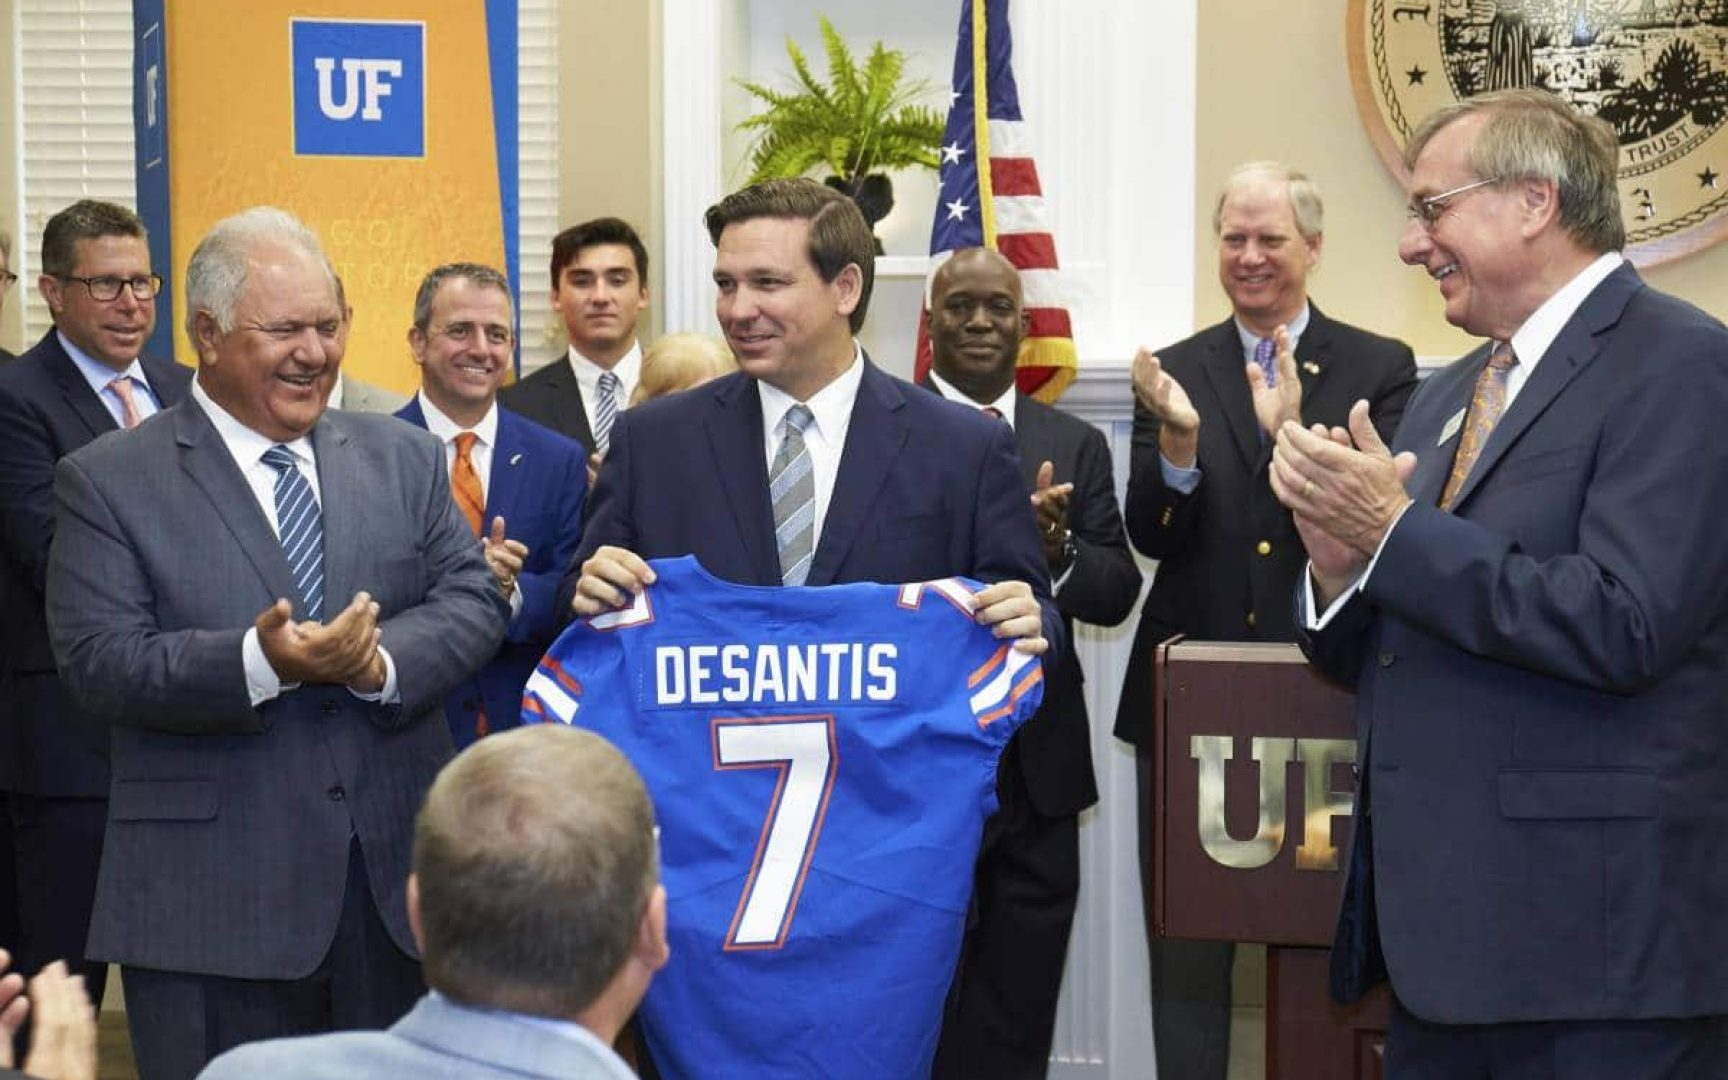 Florida Governor Ron DeSantis holds up a UF football jersey with his last name and the number 7. He is flanked by More Hossini and UF President Kent Fuchs who are clapping